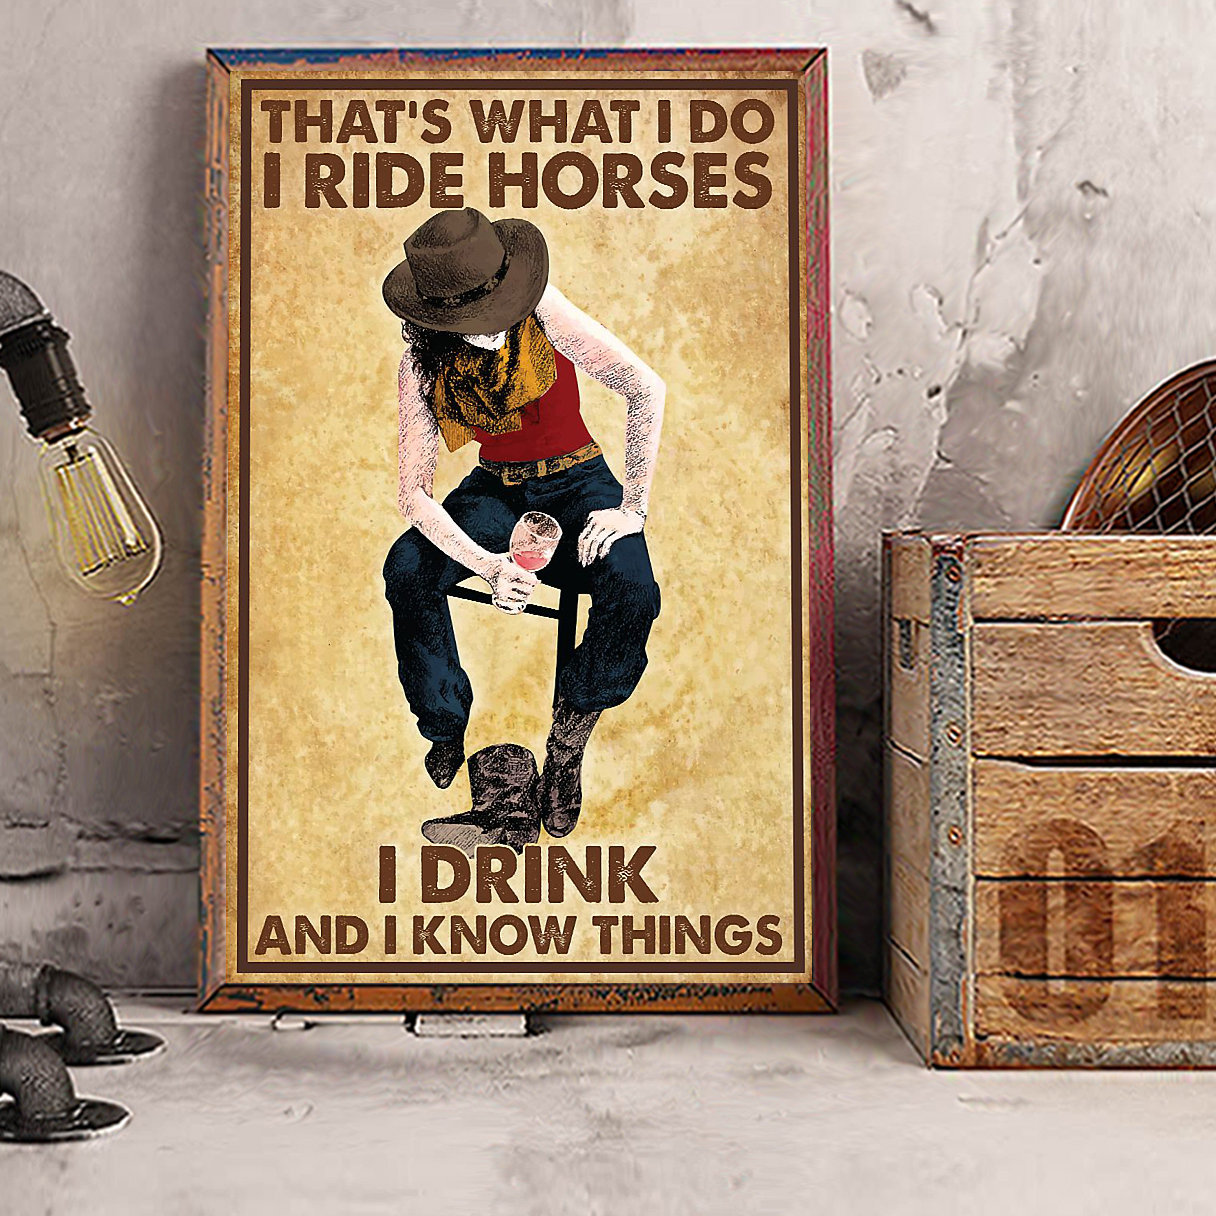 Cowgirl that's what I do I ride horses I drink and I know things poster A2